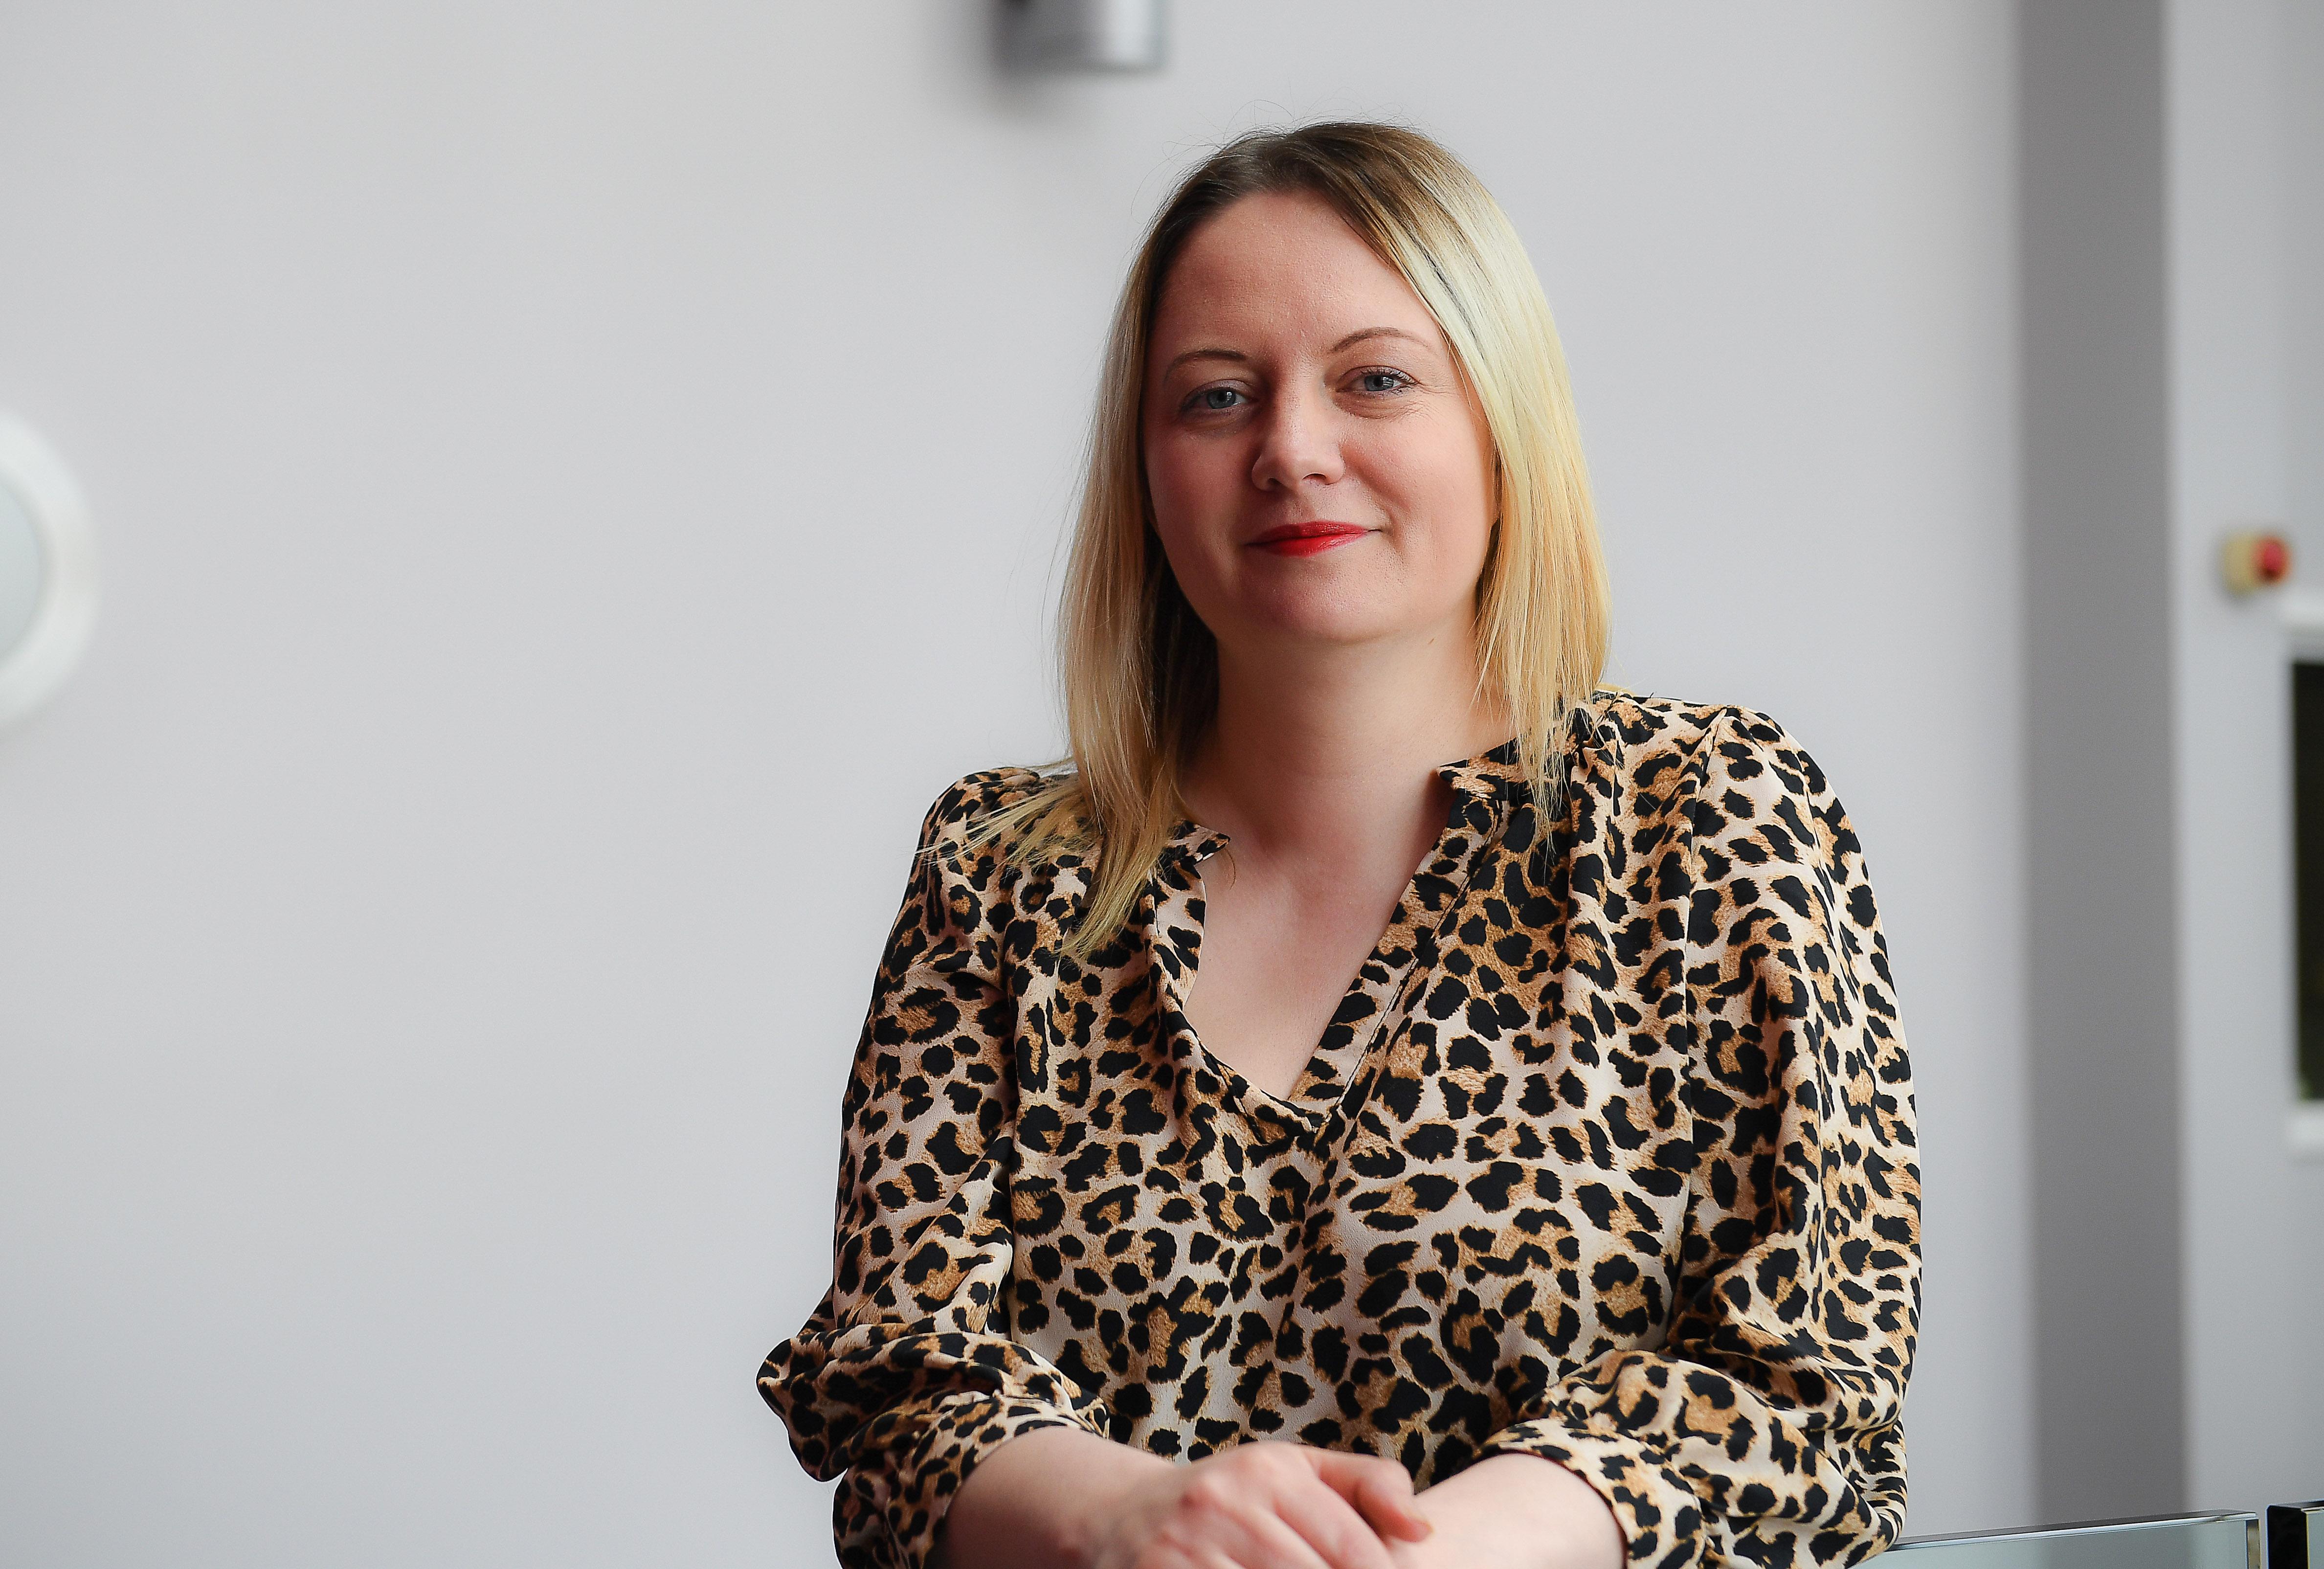 Marketing Manager appointment further strengthens sector-leading team